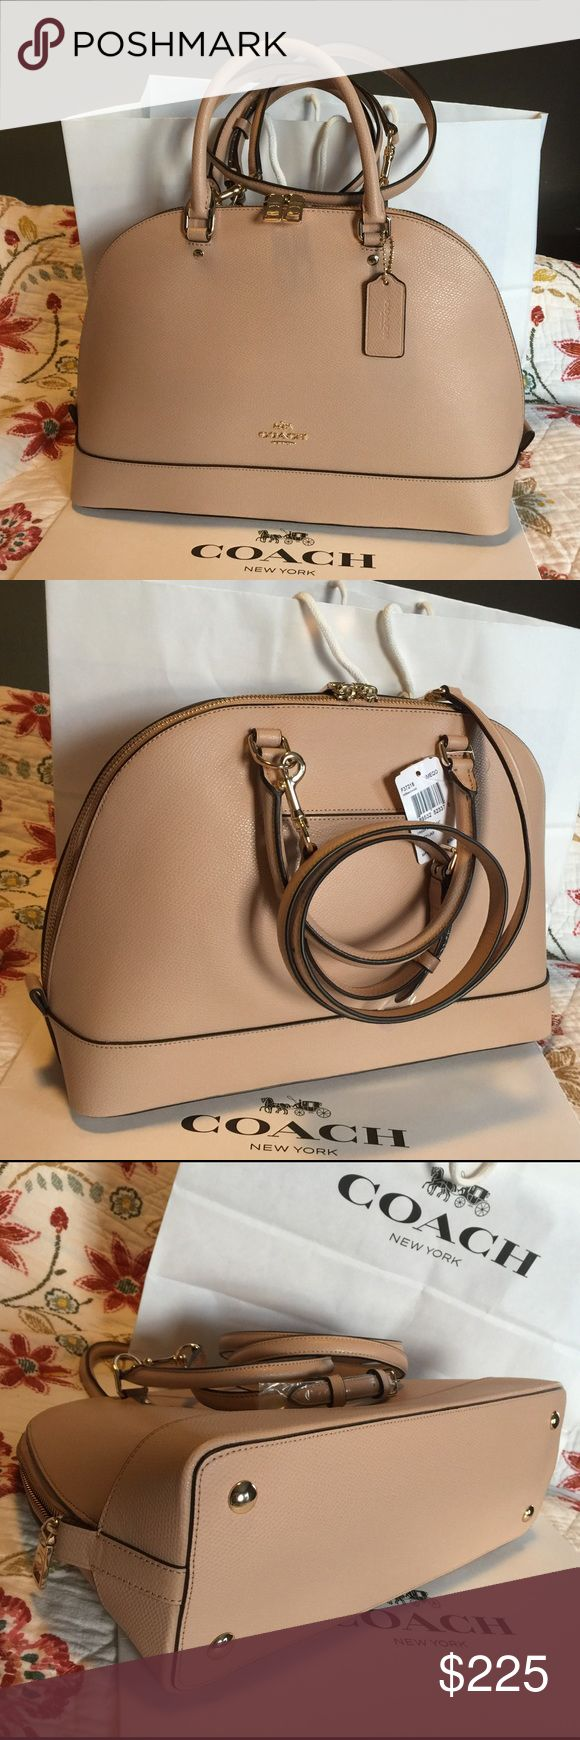 Coach Purse 100% Authentic Coach Handbag or Crossbody, brand new with tag!color Beechwood. Coach Bags Crossbody Bags